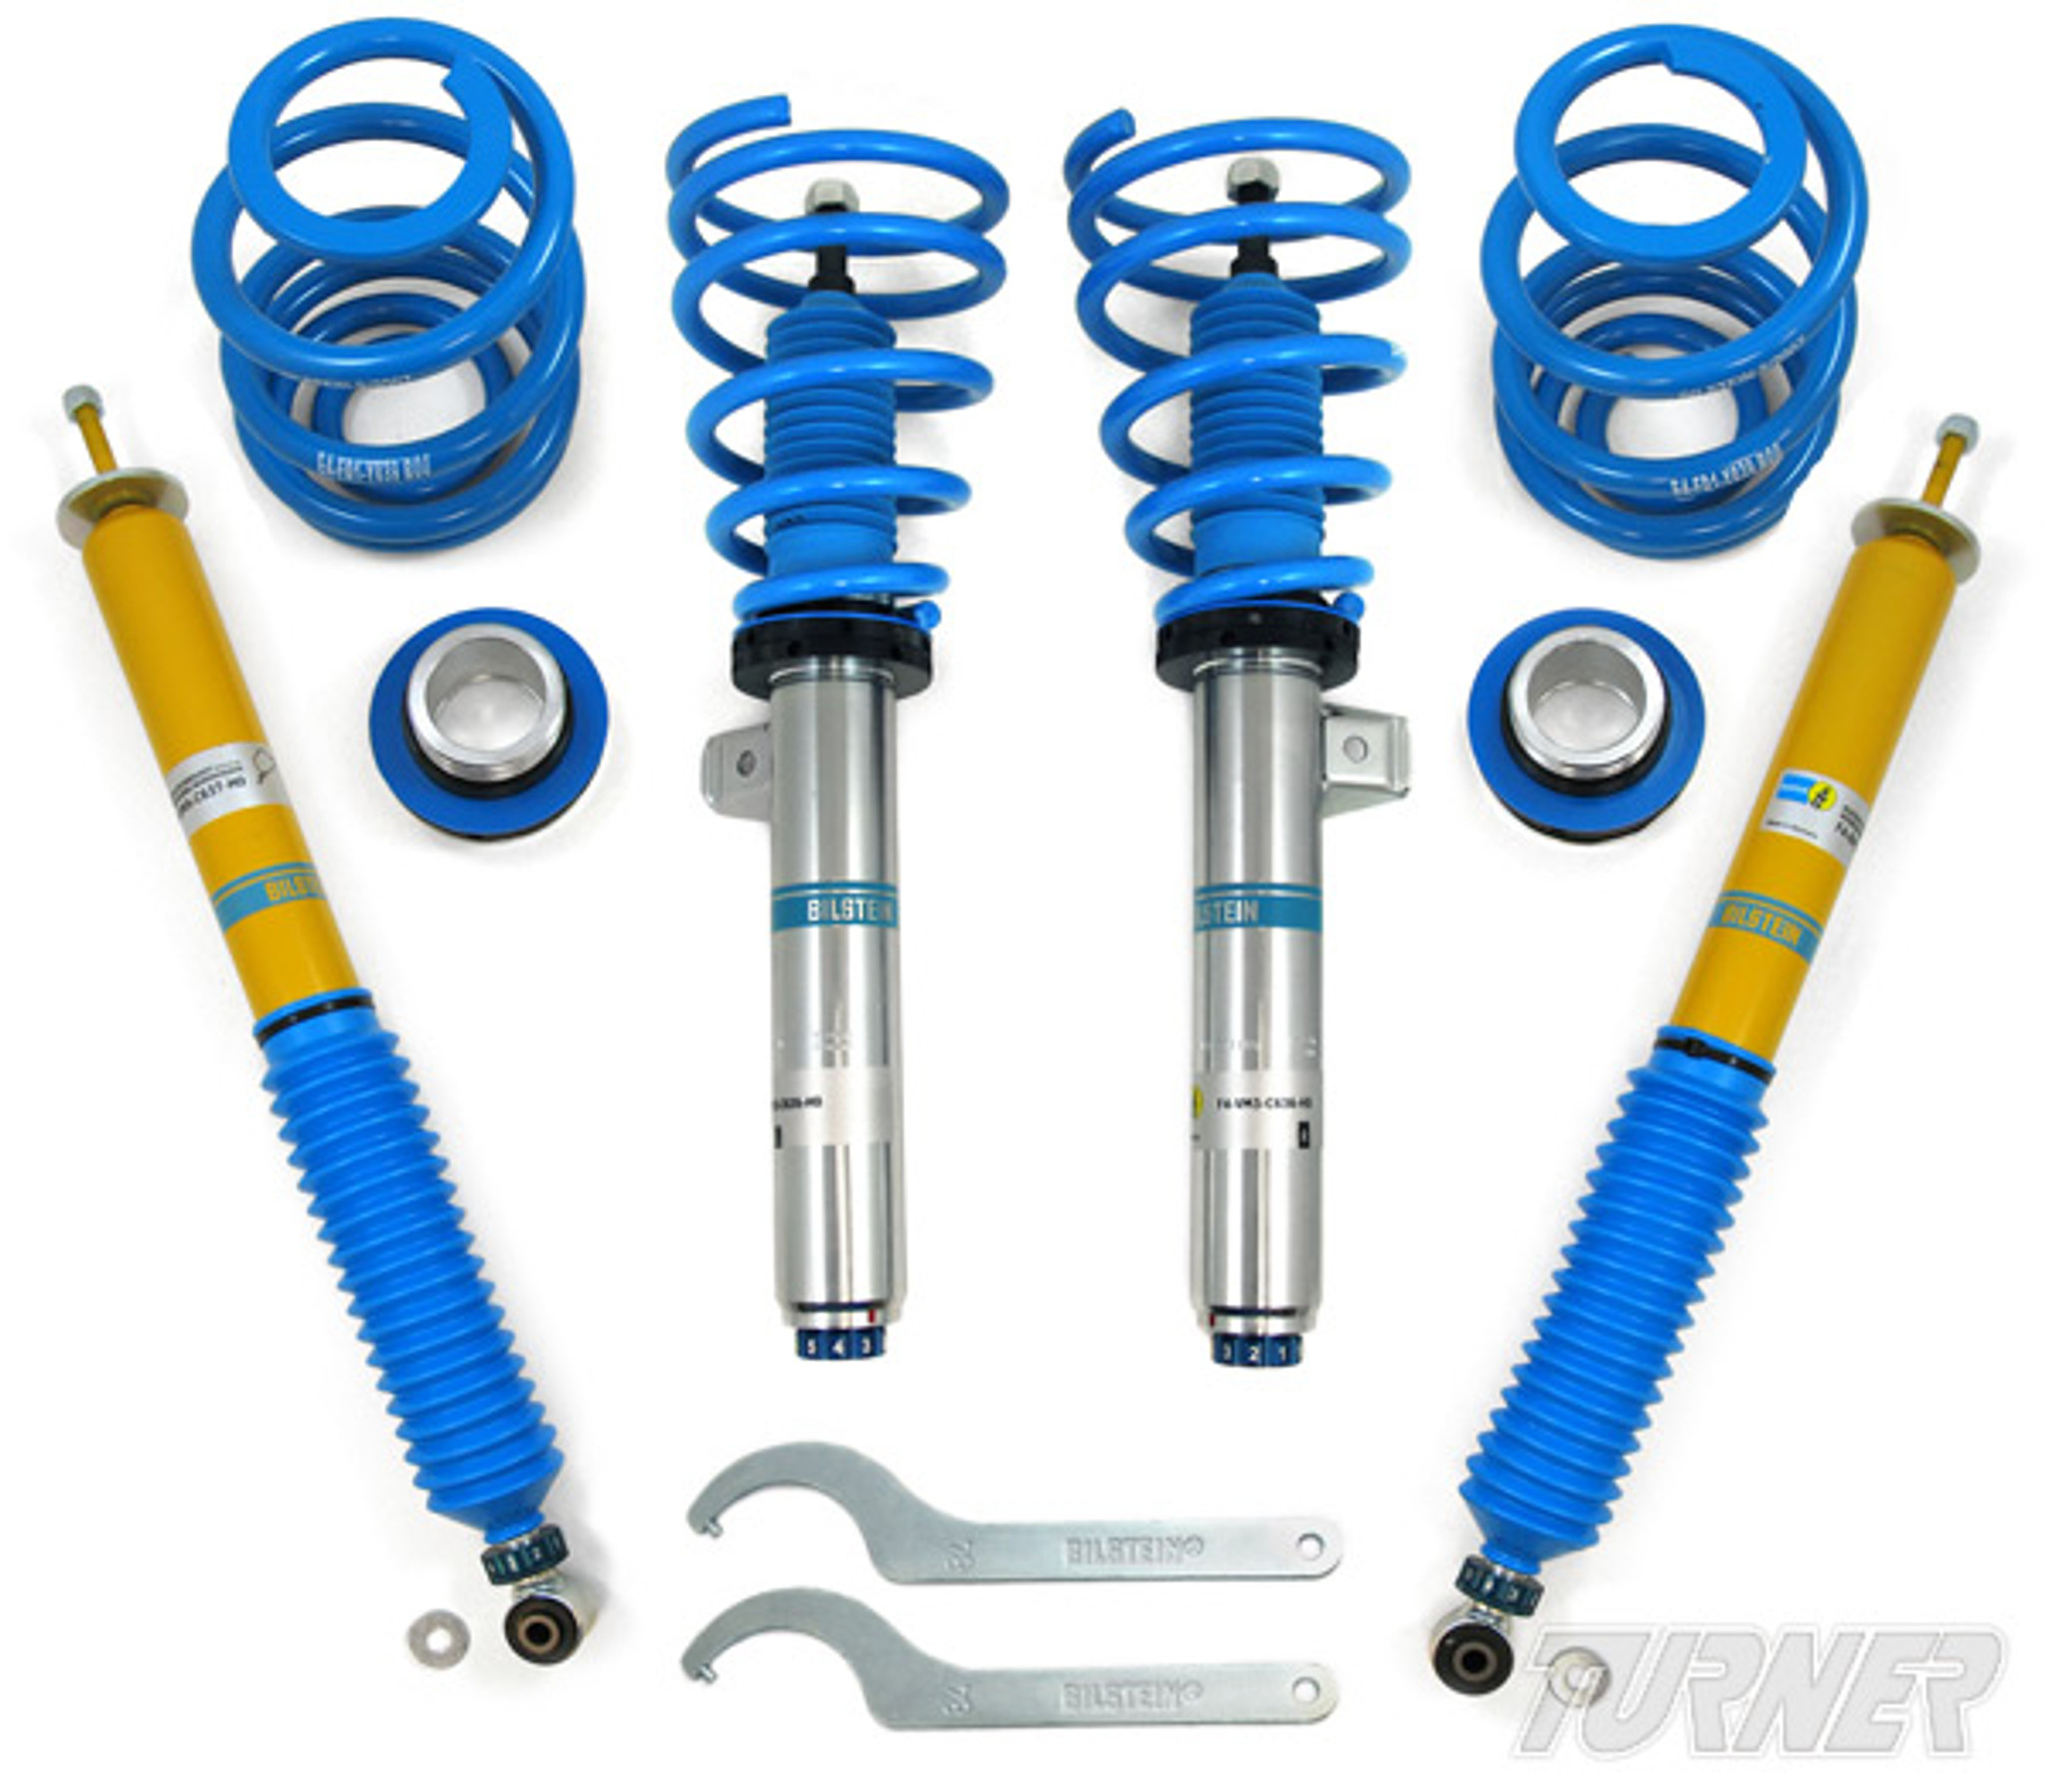 Bilstein B14 coilovers for your BMW F30 3-Series